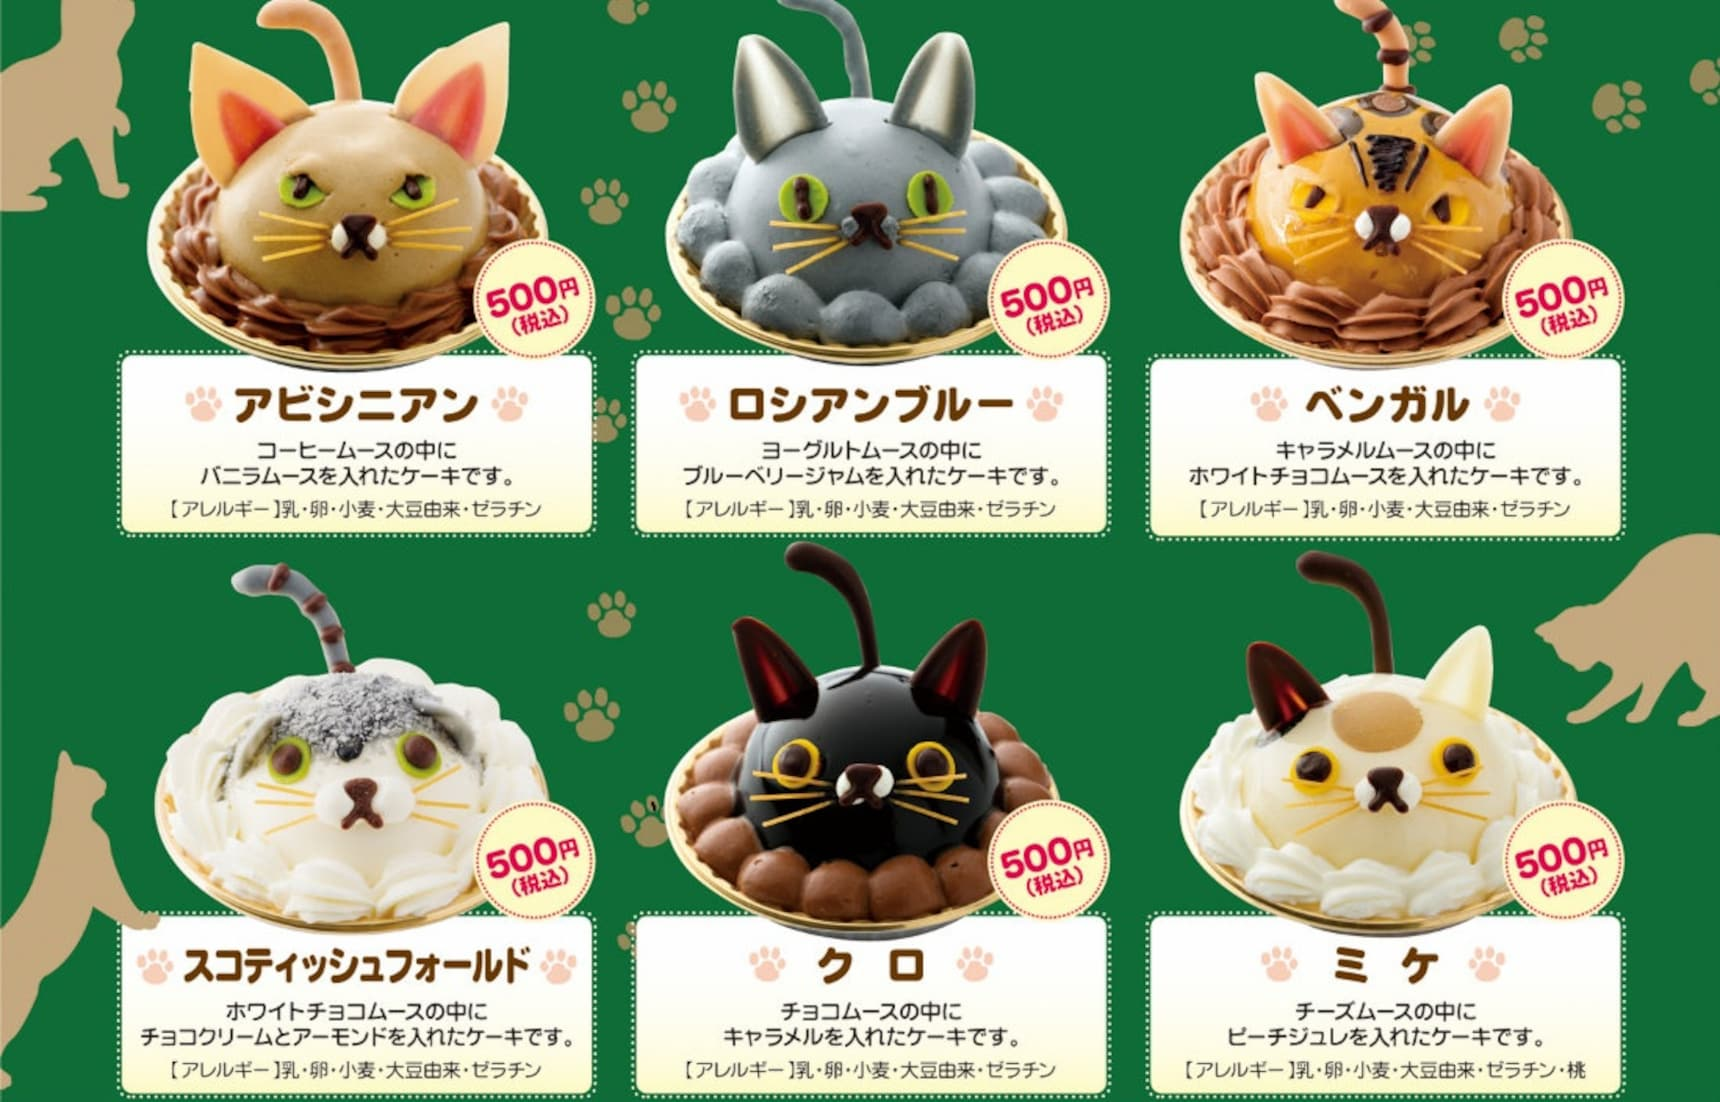 Get Your Paws On Some Kitty Cakes!